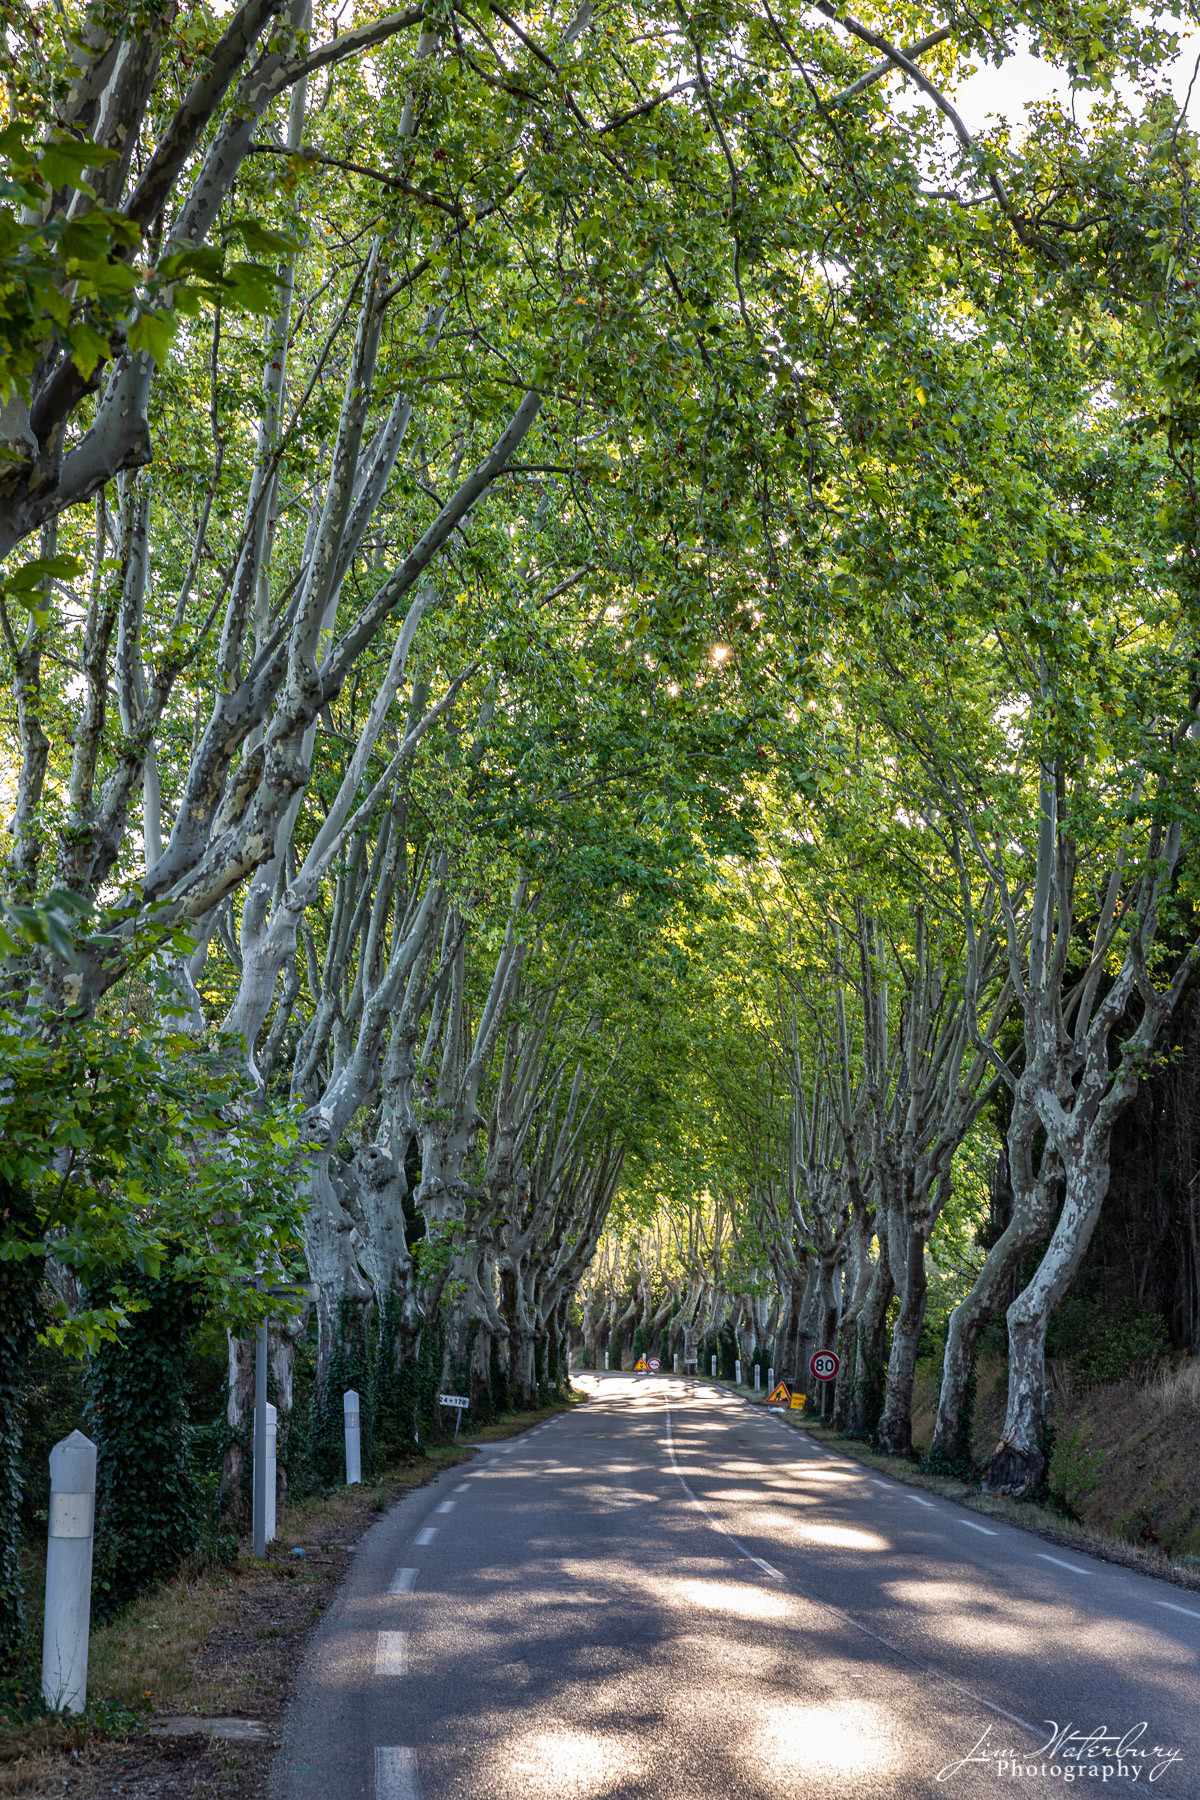 Plane trees near St. Remy for a tunnel along a country road.